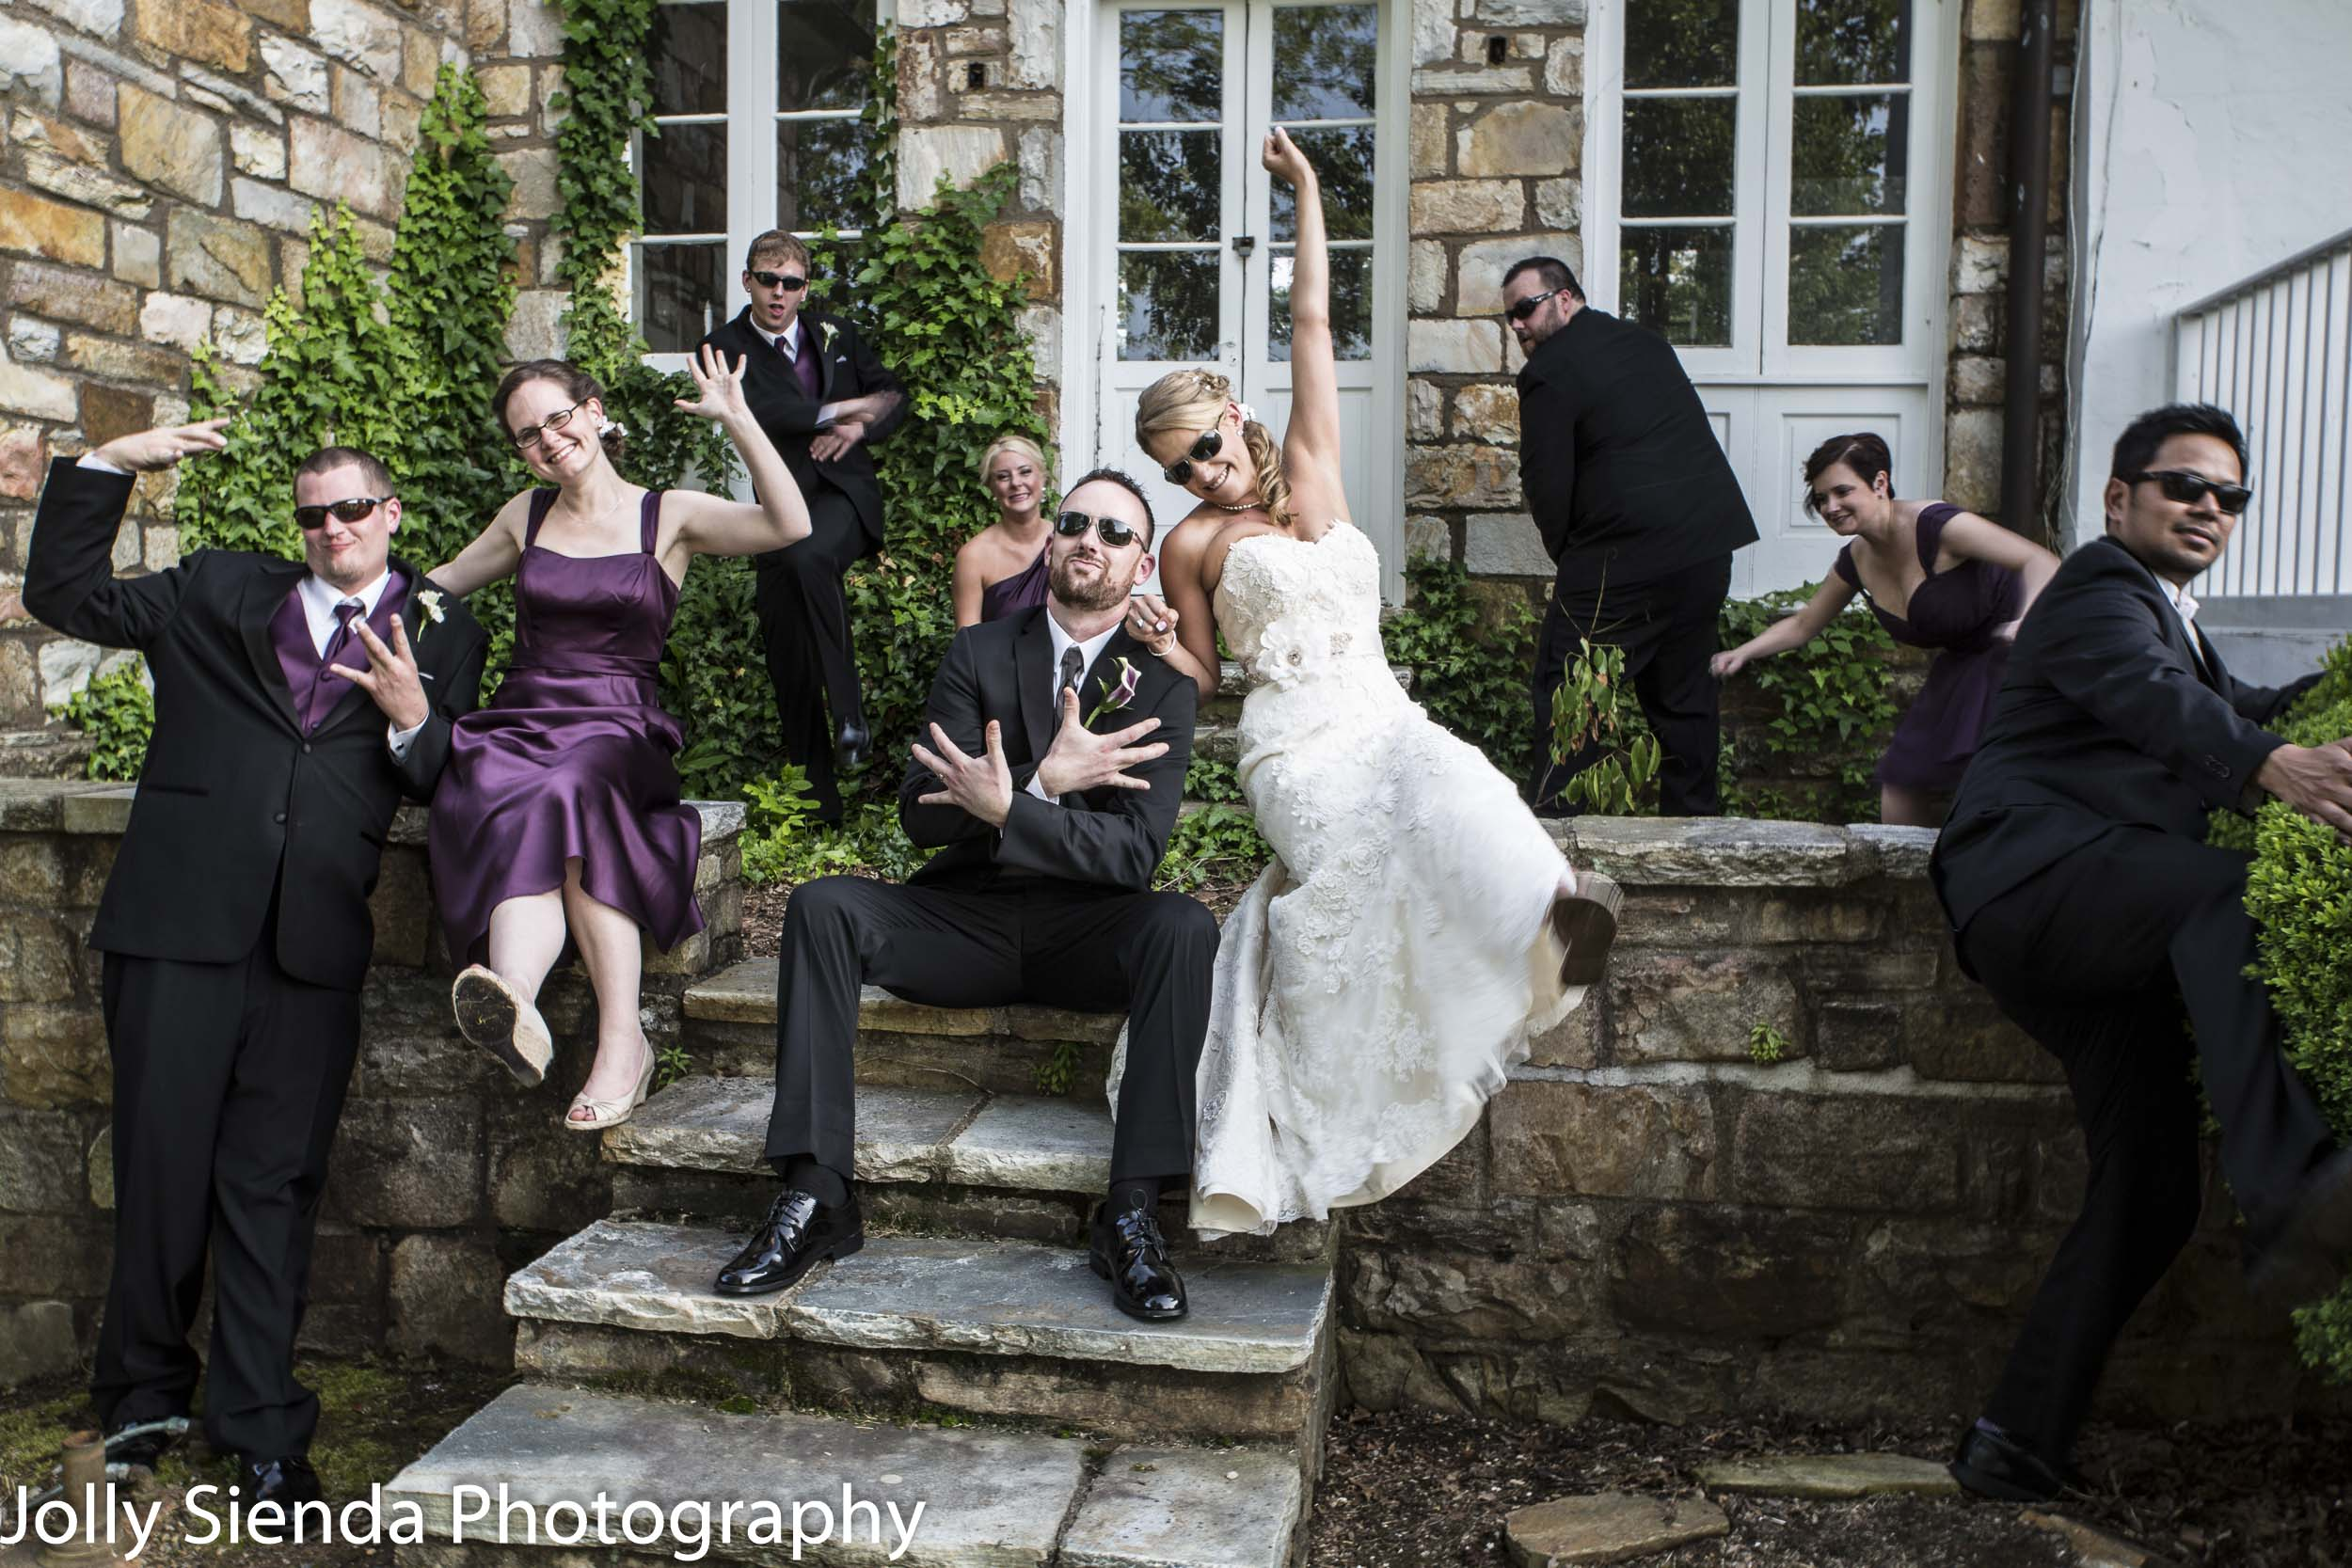 Wedding party acting cool!